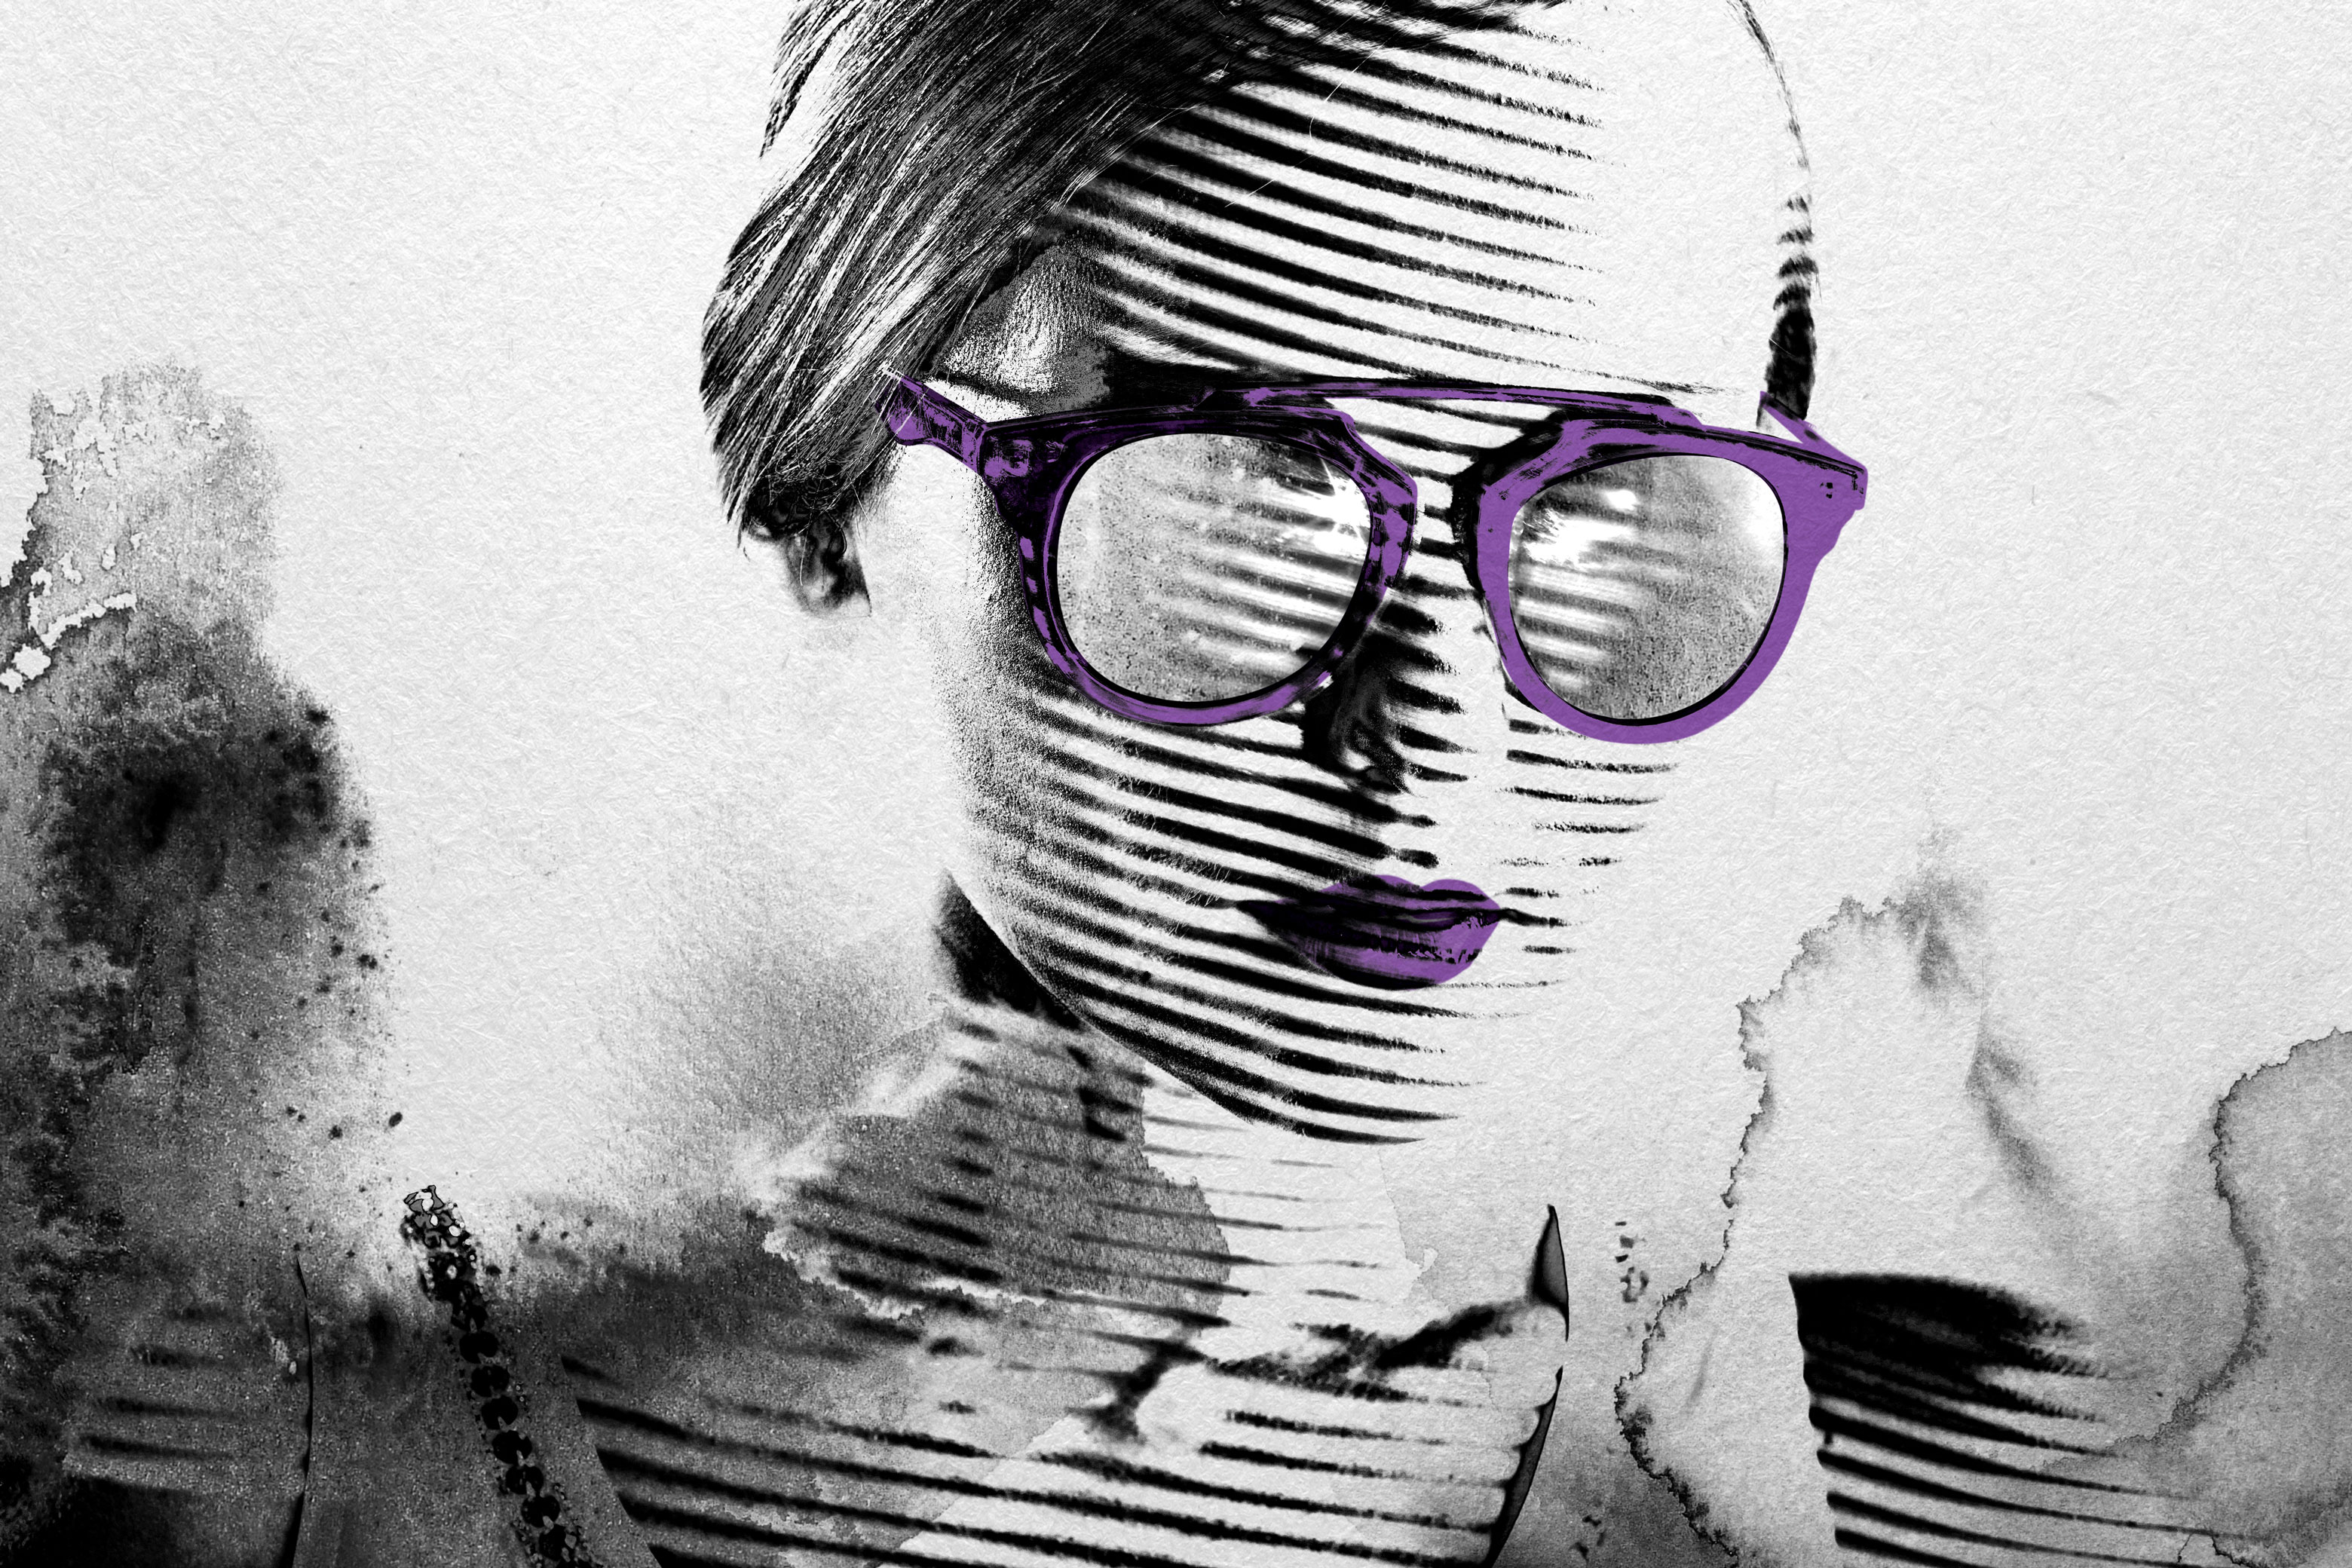 Girl in Blotted Illustration with Purple Glasses and Lips